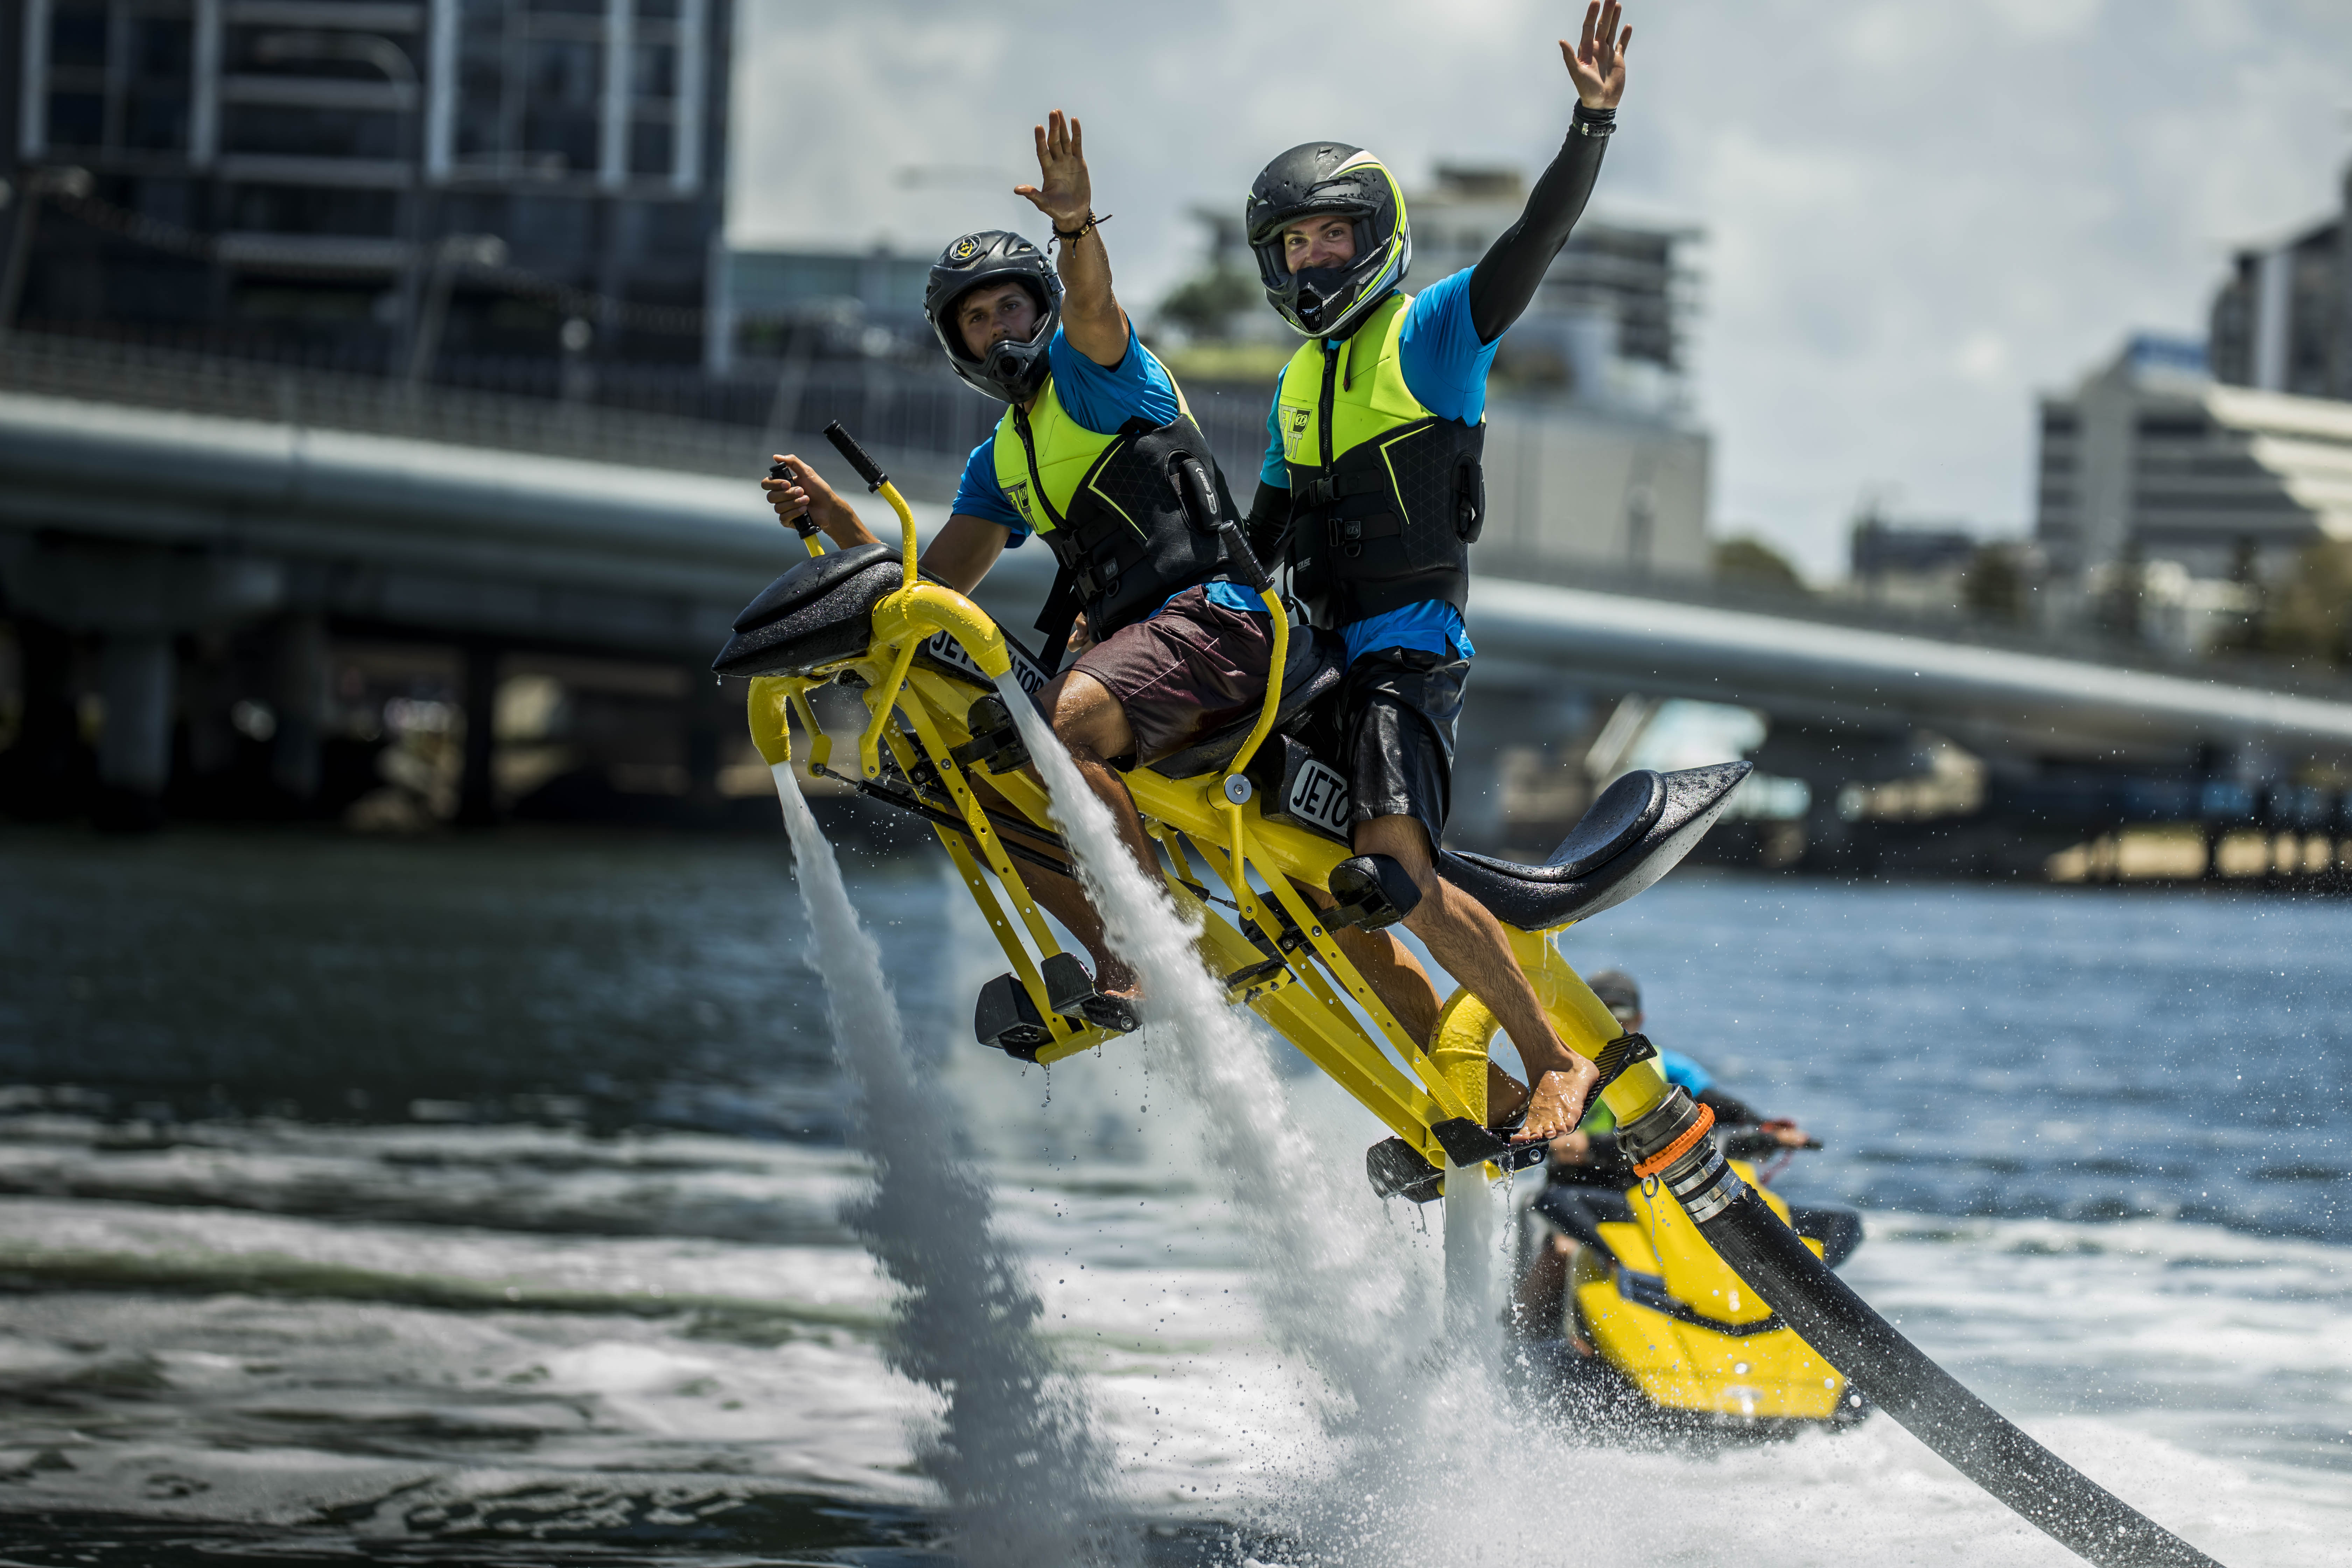 Tandem Jetovator - The Jetpack for 2 people!